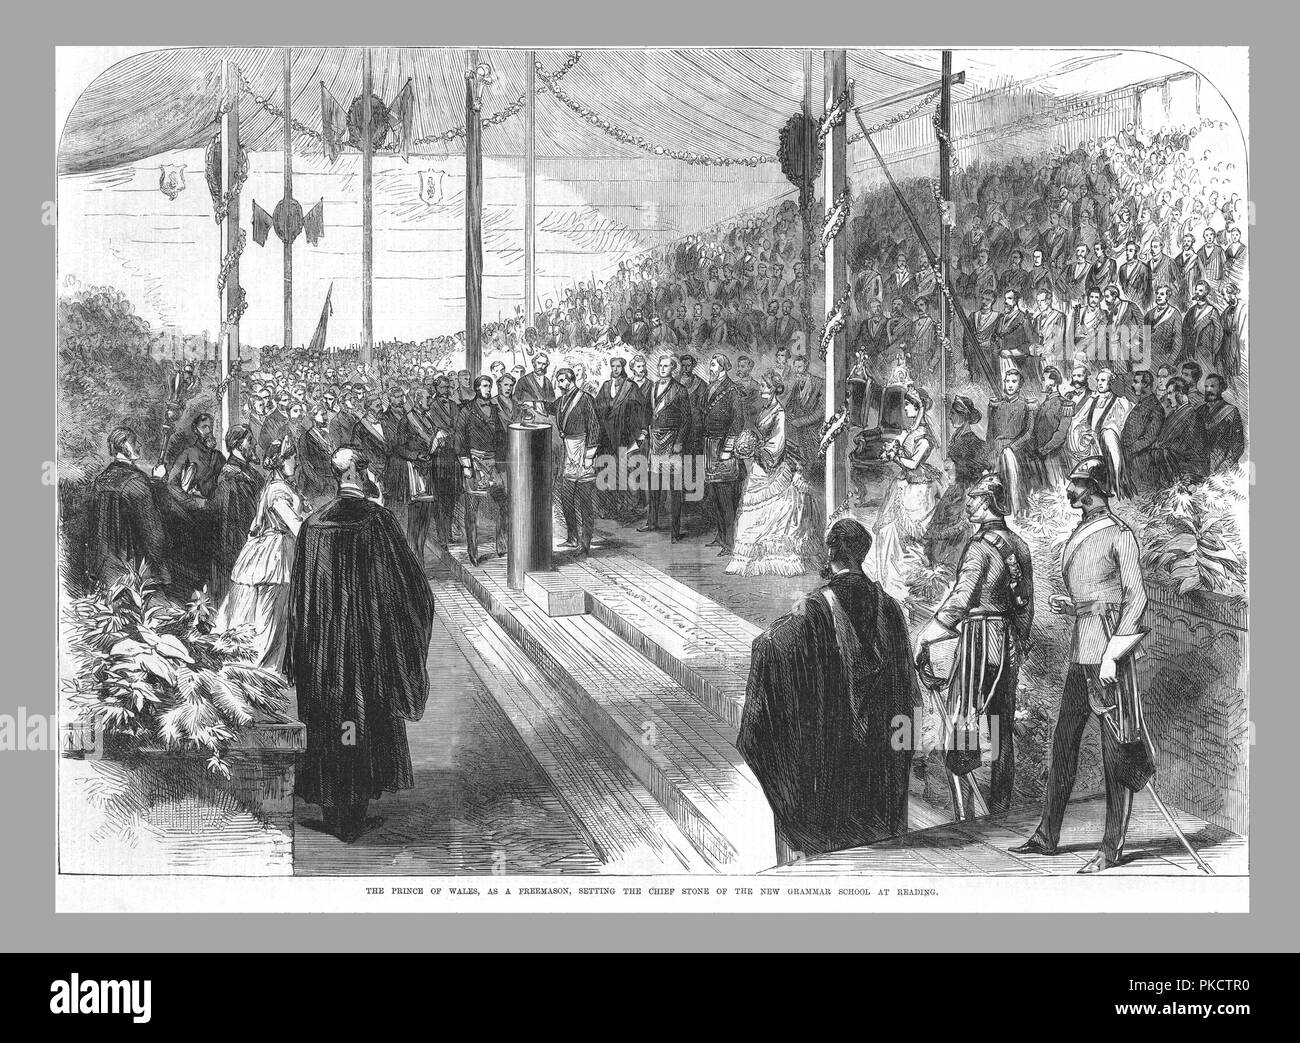 'The Prince of Wales, as a Freemason, Setting the Chief Stone at the New Grammar School at Reading.', 1870. The Prince of Wales (the future King Edward VII, 1841-1910) laying the foundation stone at Reading School in Berkshire. From the Illustrated London News, 8 July 1870. - Stock Image